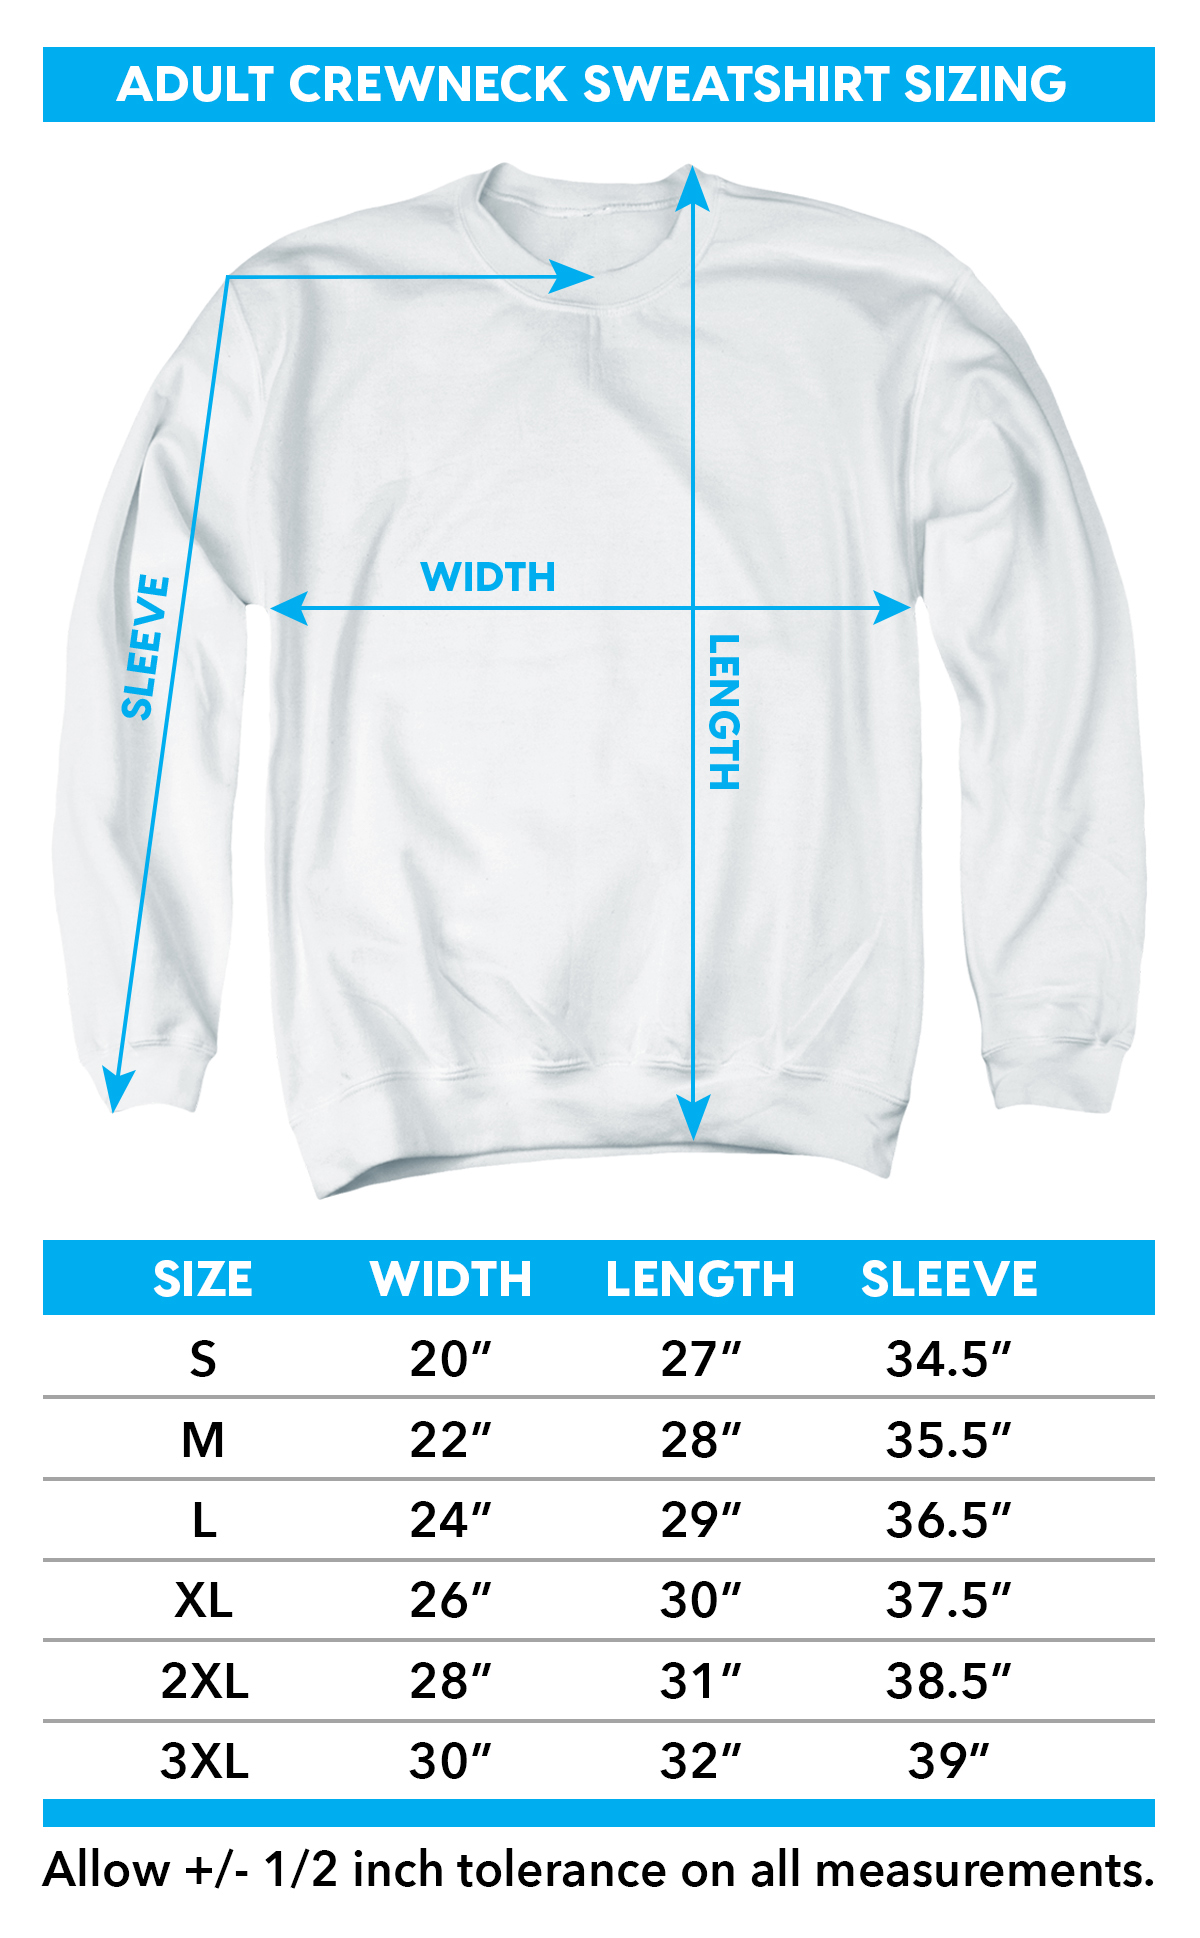 Sizing chart for the Star Trek Episode 17: Shore Leave crewneck sweatshirt